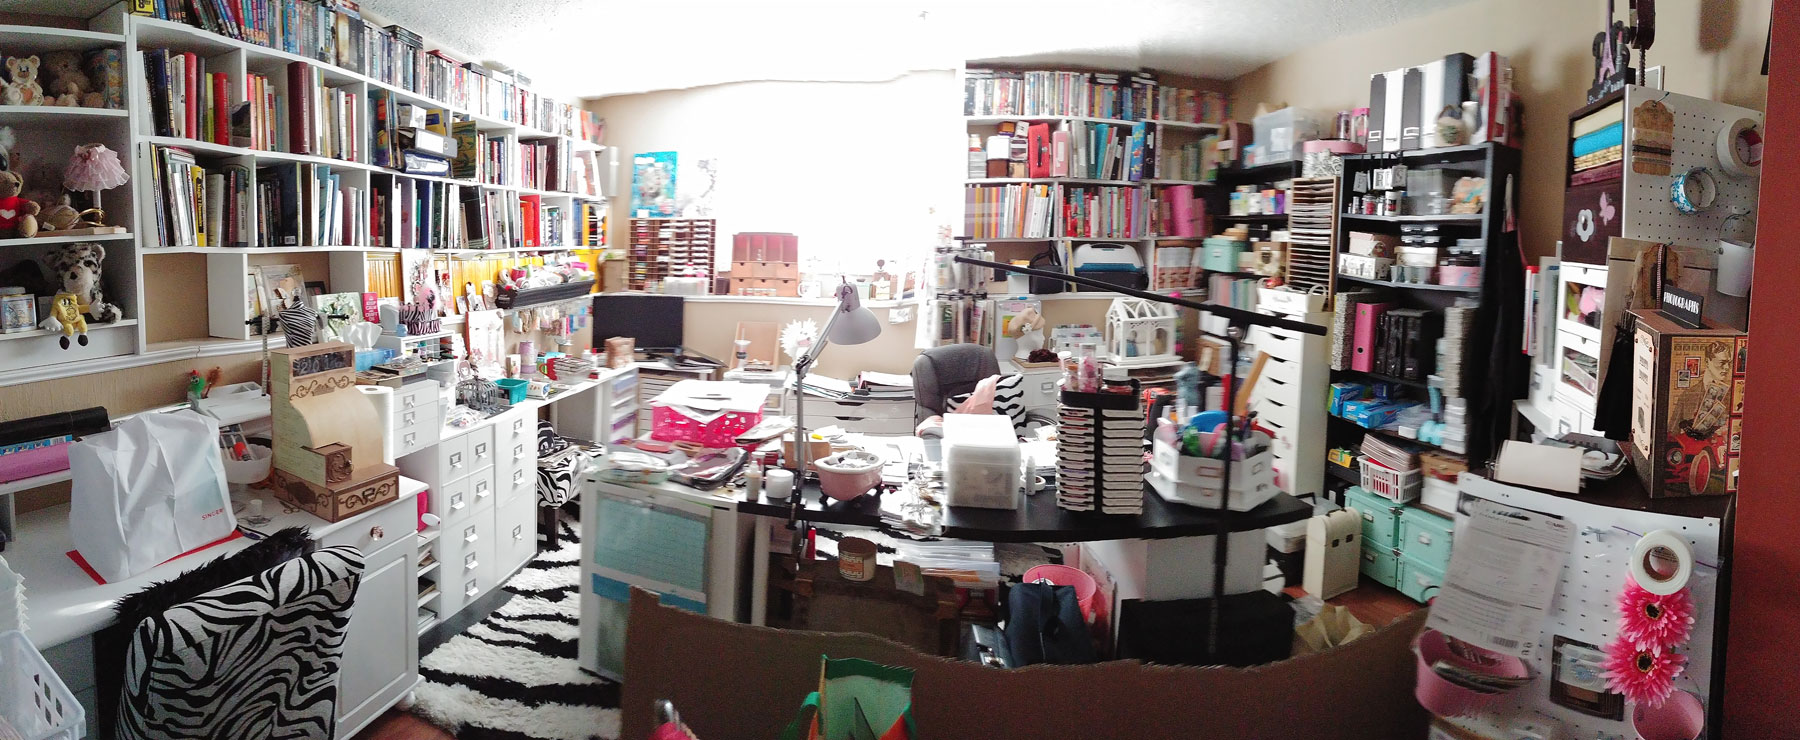 Craft Room Before 2018